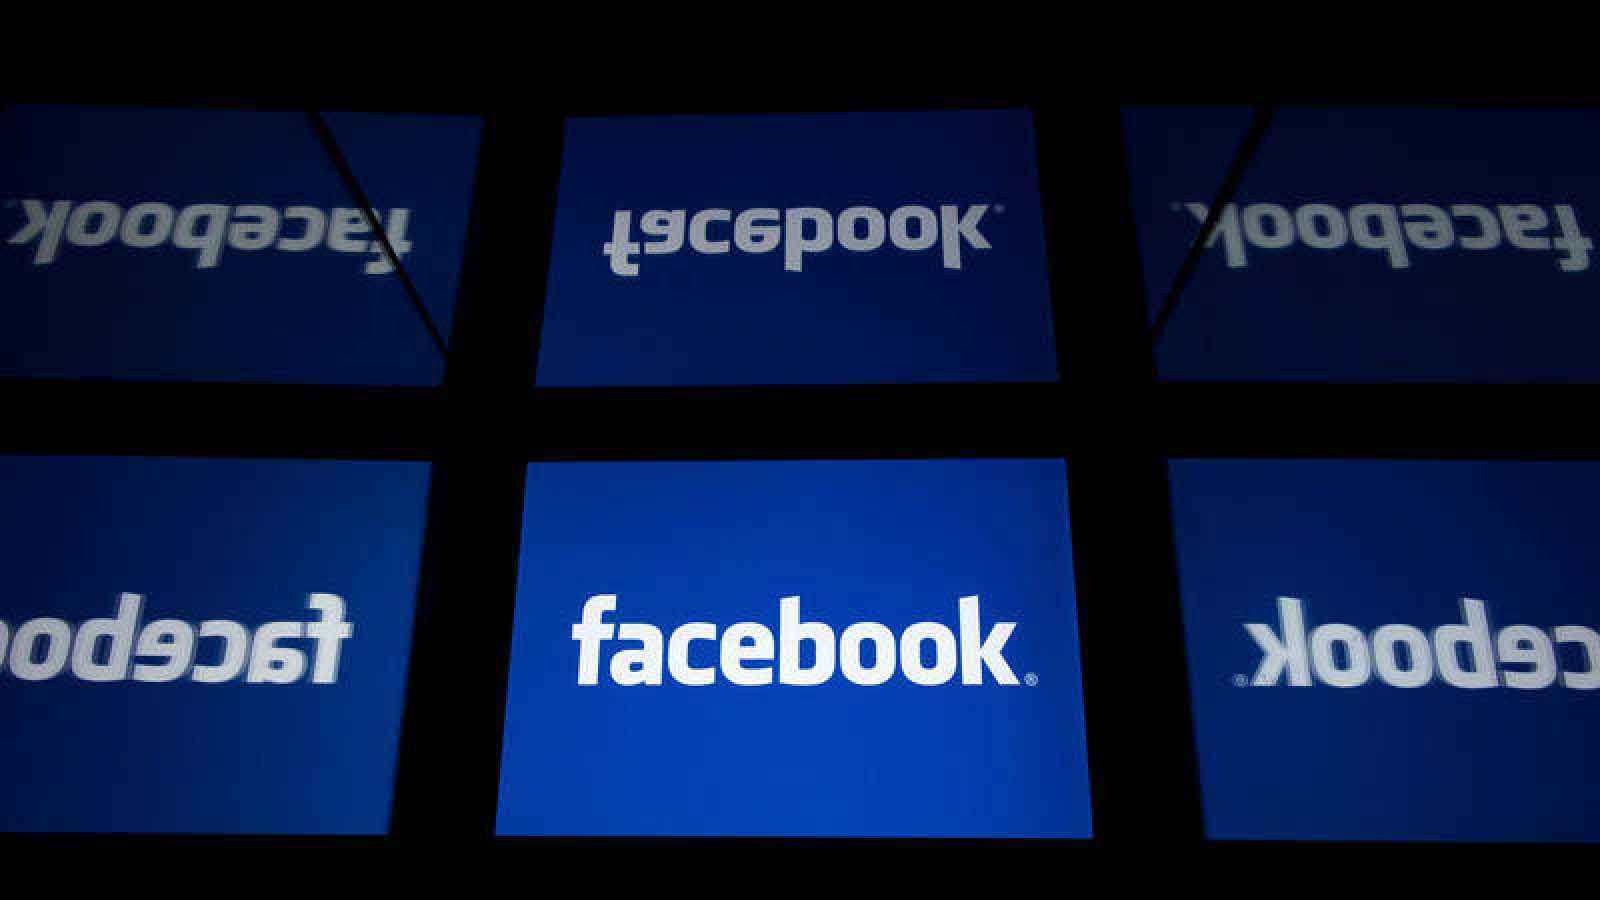 Prepárate para un aluvión de apps nuevas made in Facebook